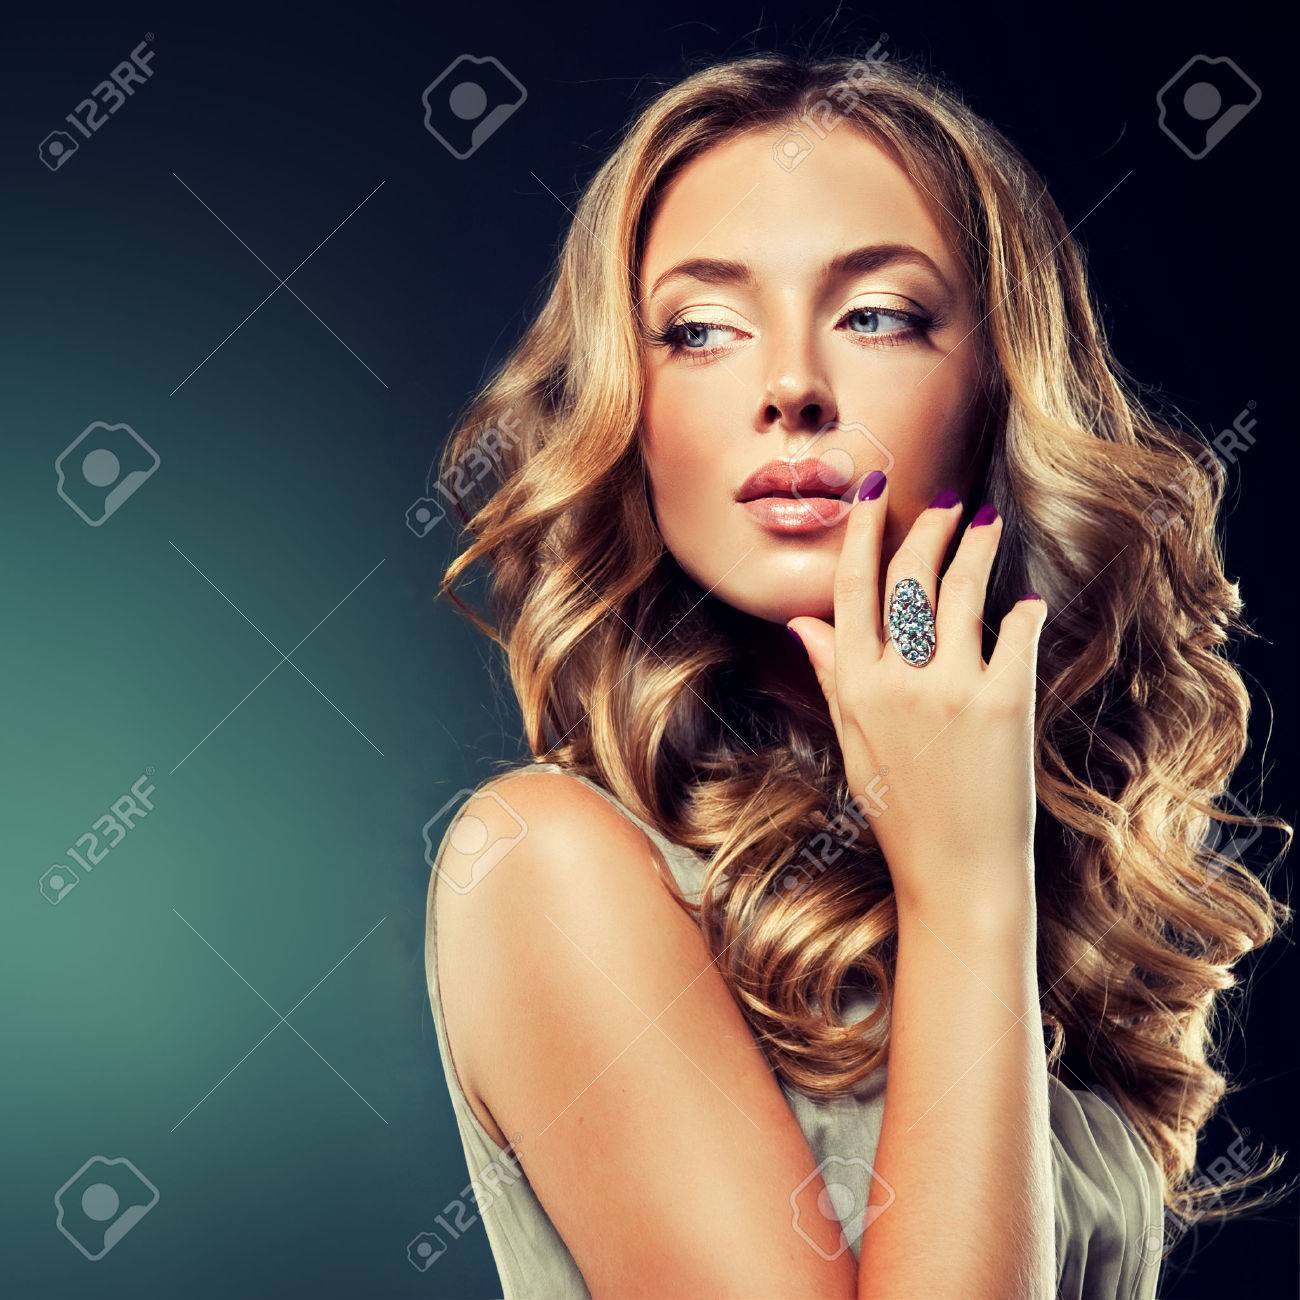 Luxury fashion style manicure cosmetics and makeup hair - 40847421